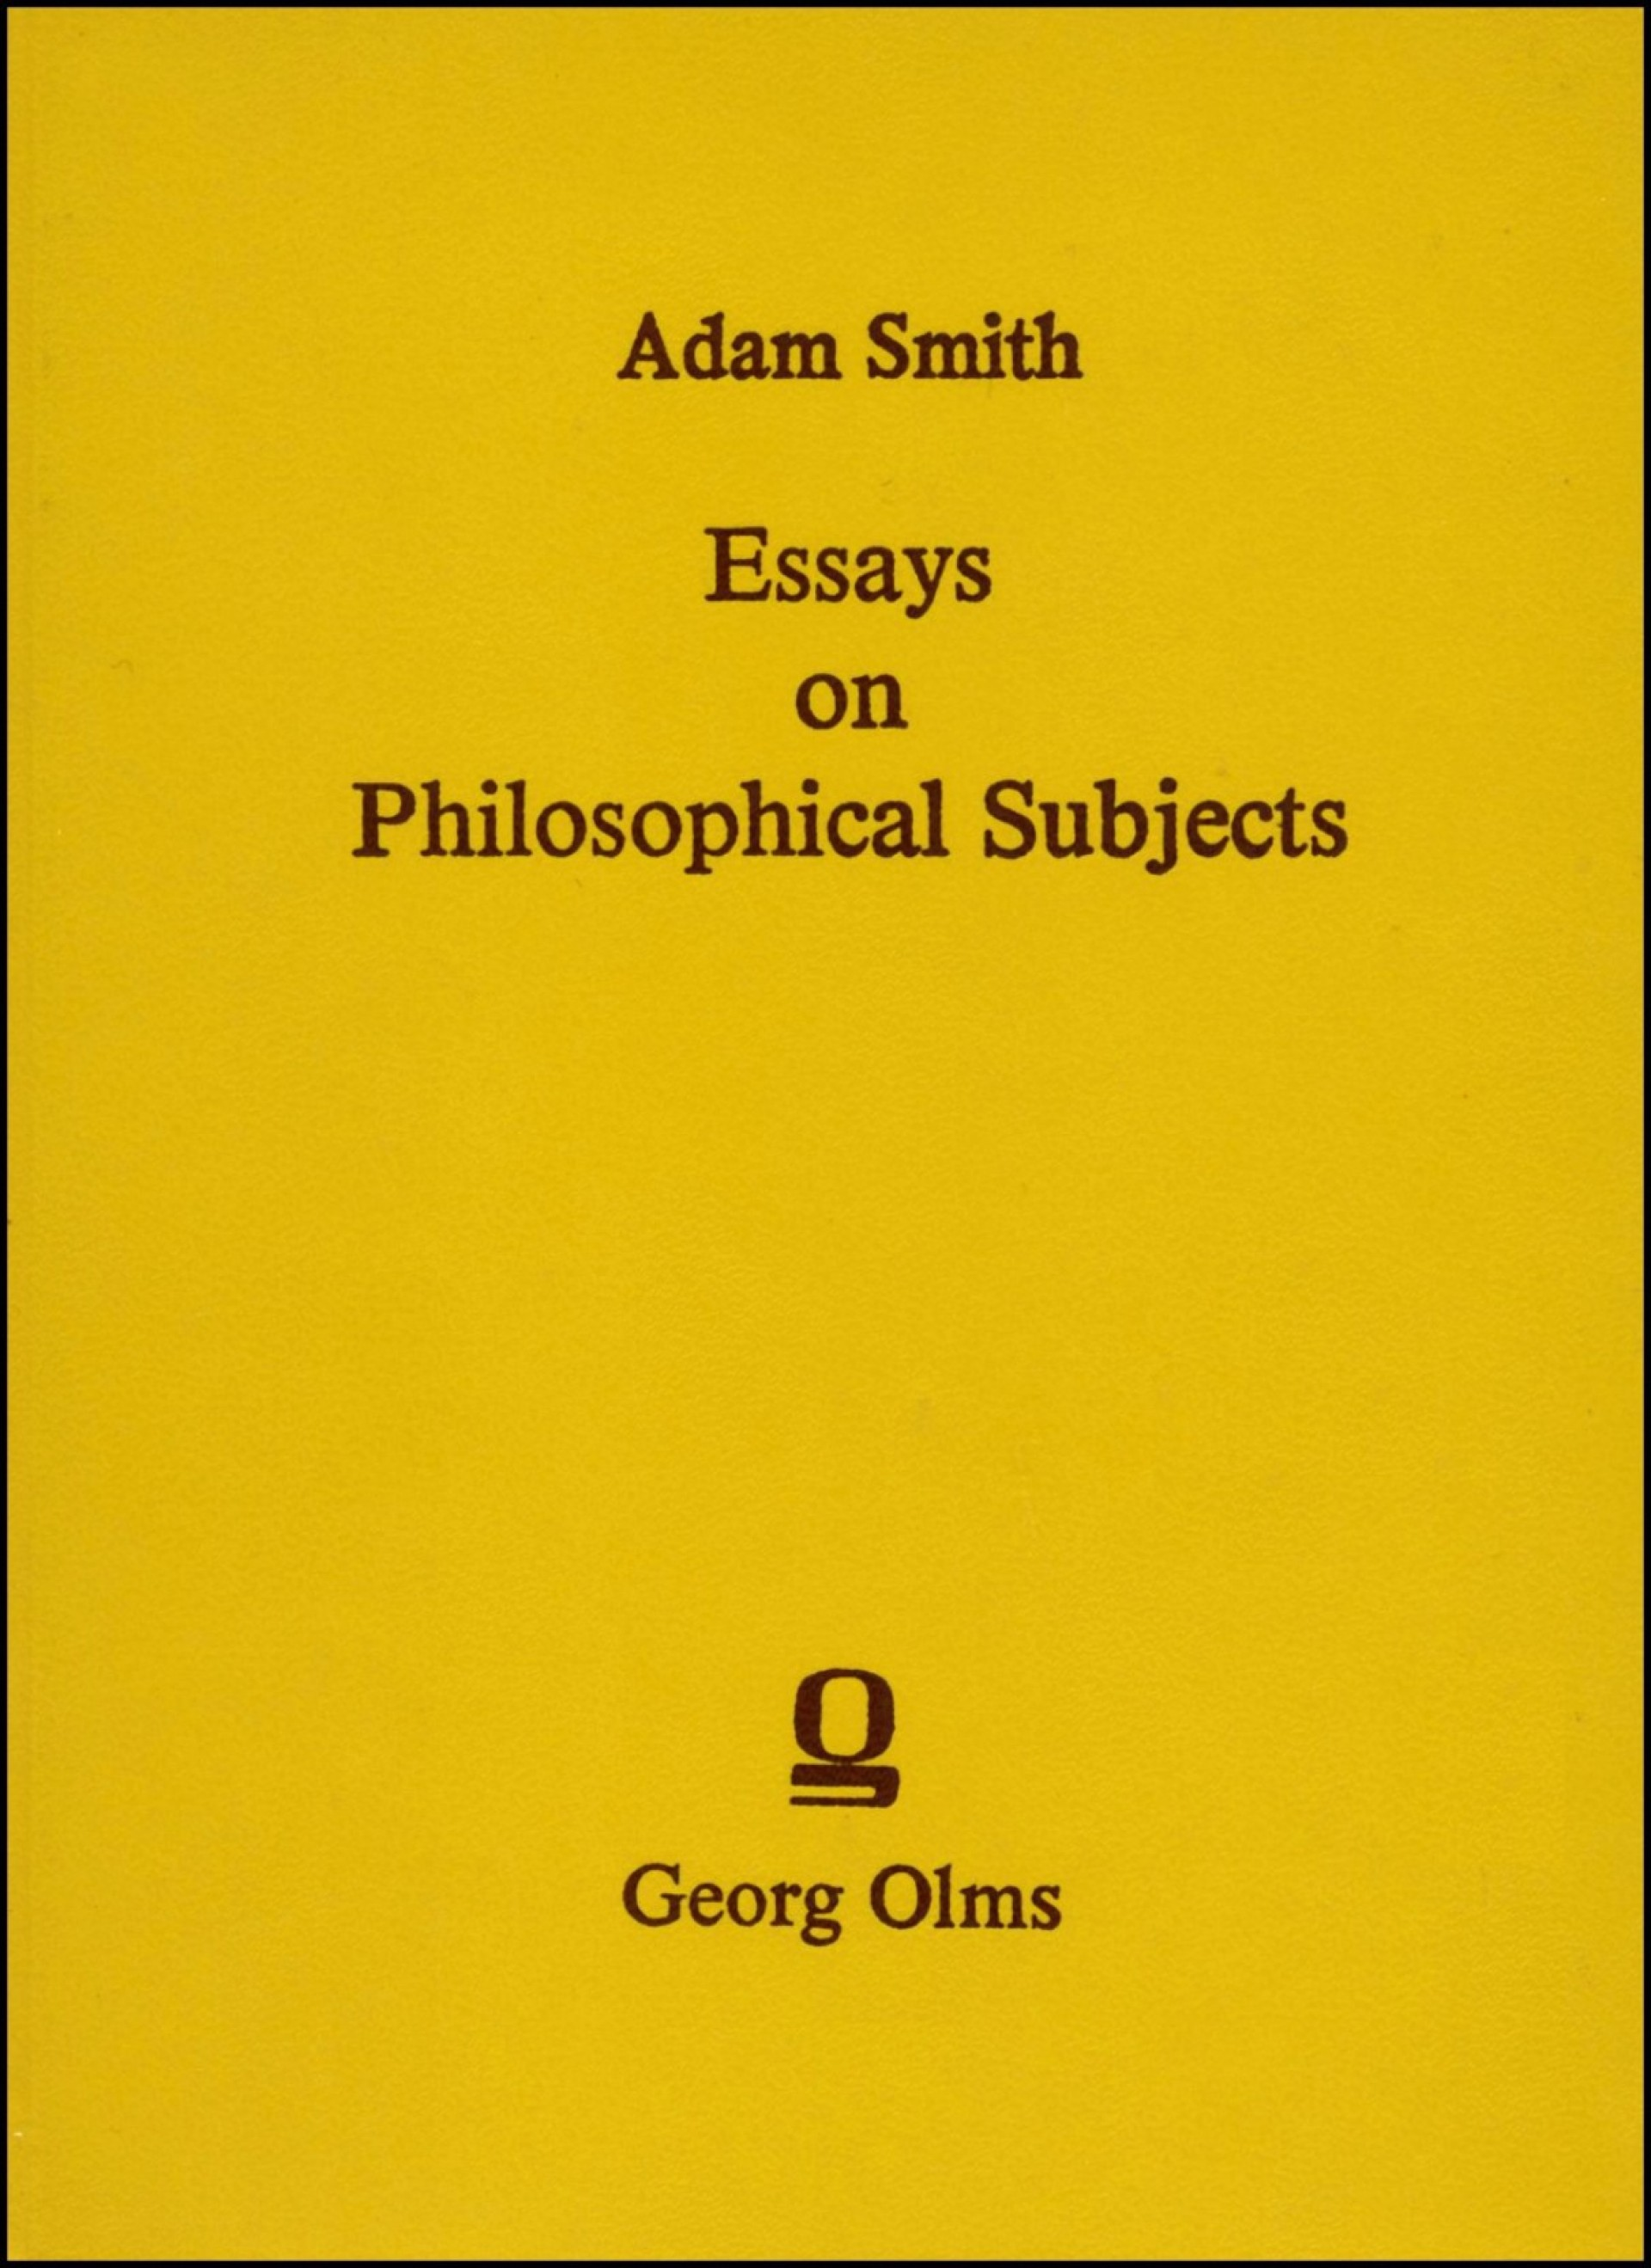 009 Essays On Philosophical Subjects Essay Example To Which Is Prefixed An Account Original Best Smith Pdf 1920